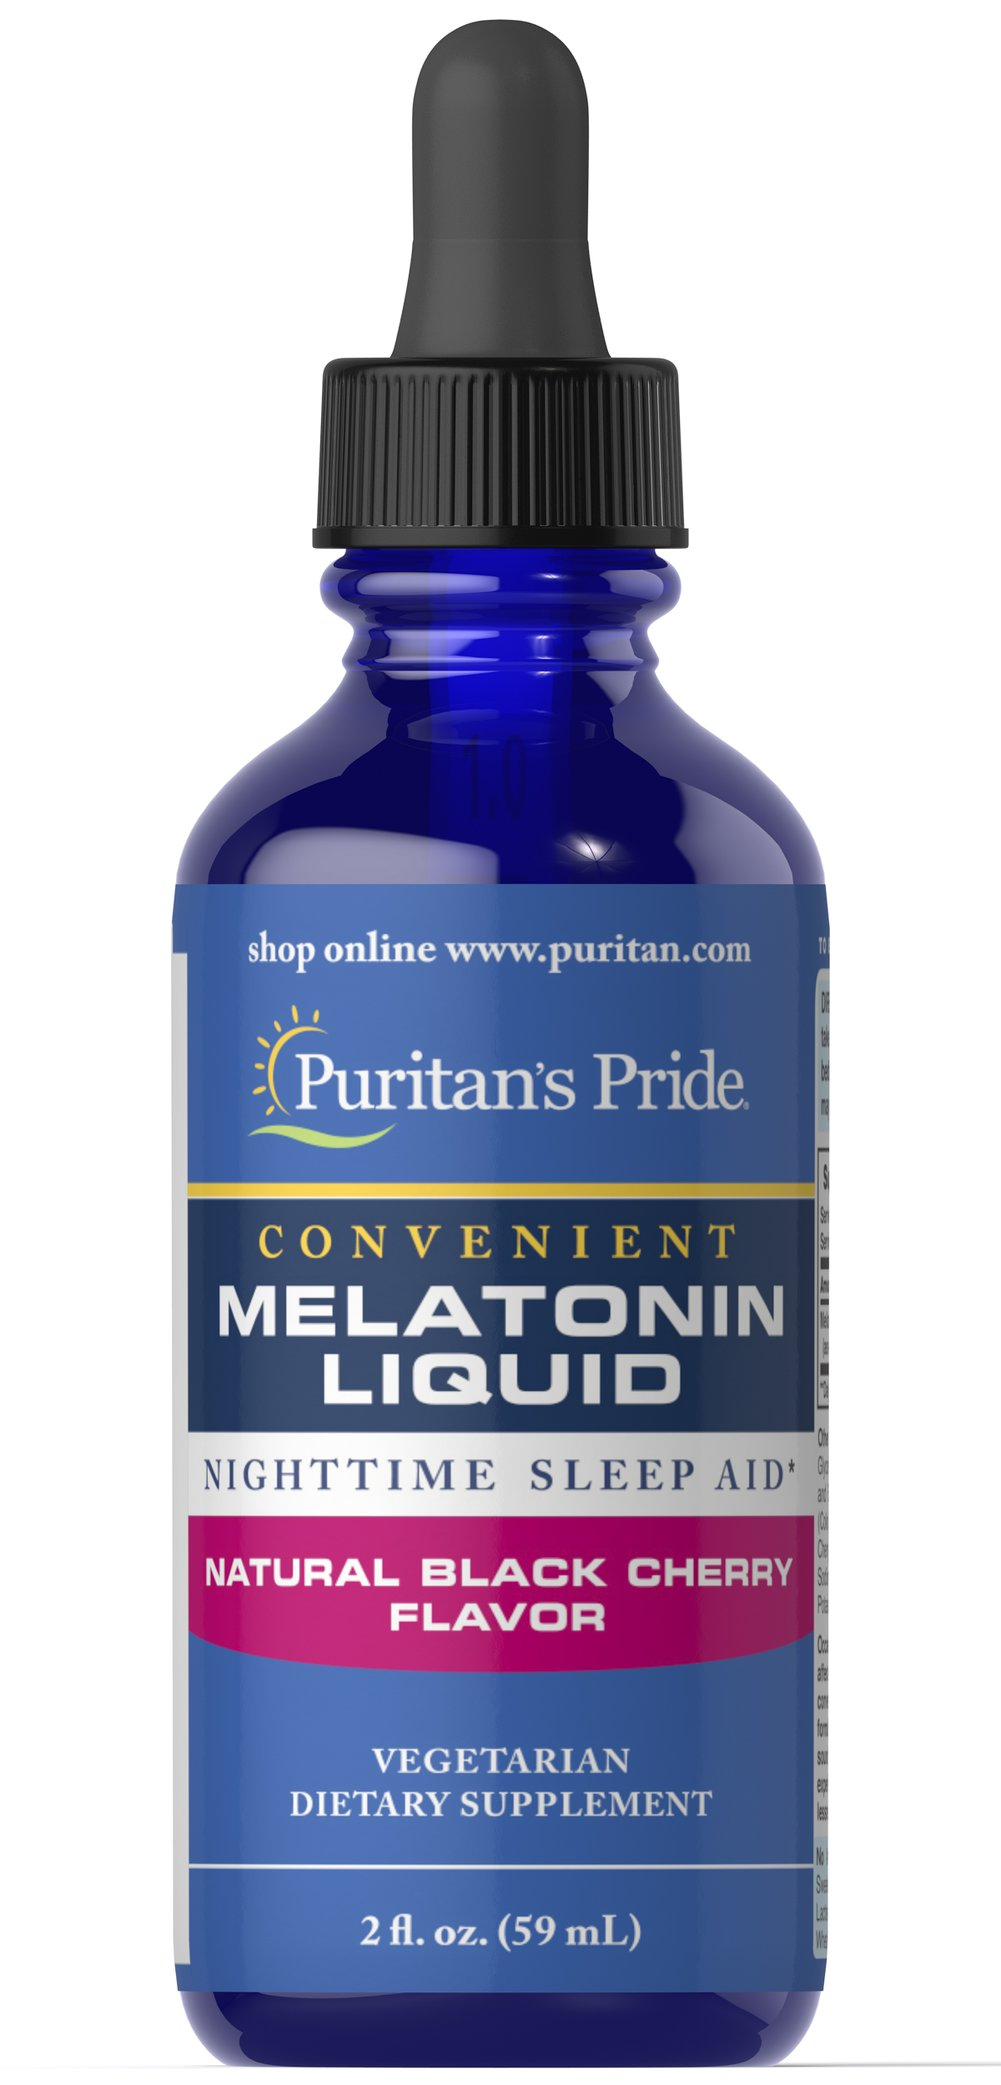 Sublingual Melatonin Cherry 1 mg <p>Sometimes it's hard to unwind after a long day. That's when it's time for Melatonin, a hormone naturally produced in the body that is closely involved in the natural sleep cycle.** It's a terrific choice if you experience occasional sleeplessness or jet lag, or if you want to improve your quality of rest.**</p> 2 oz Liquid 1 mg $2.09